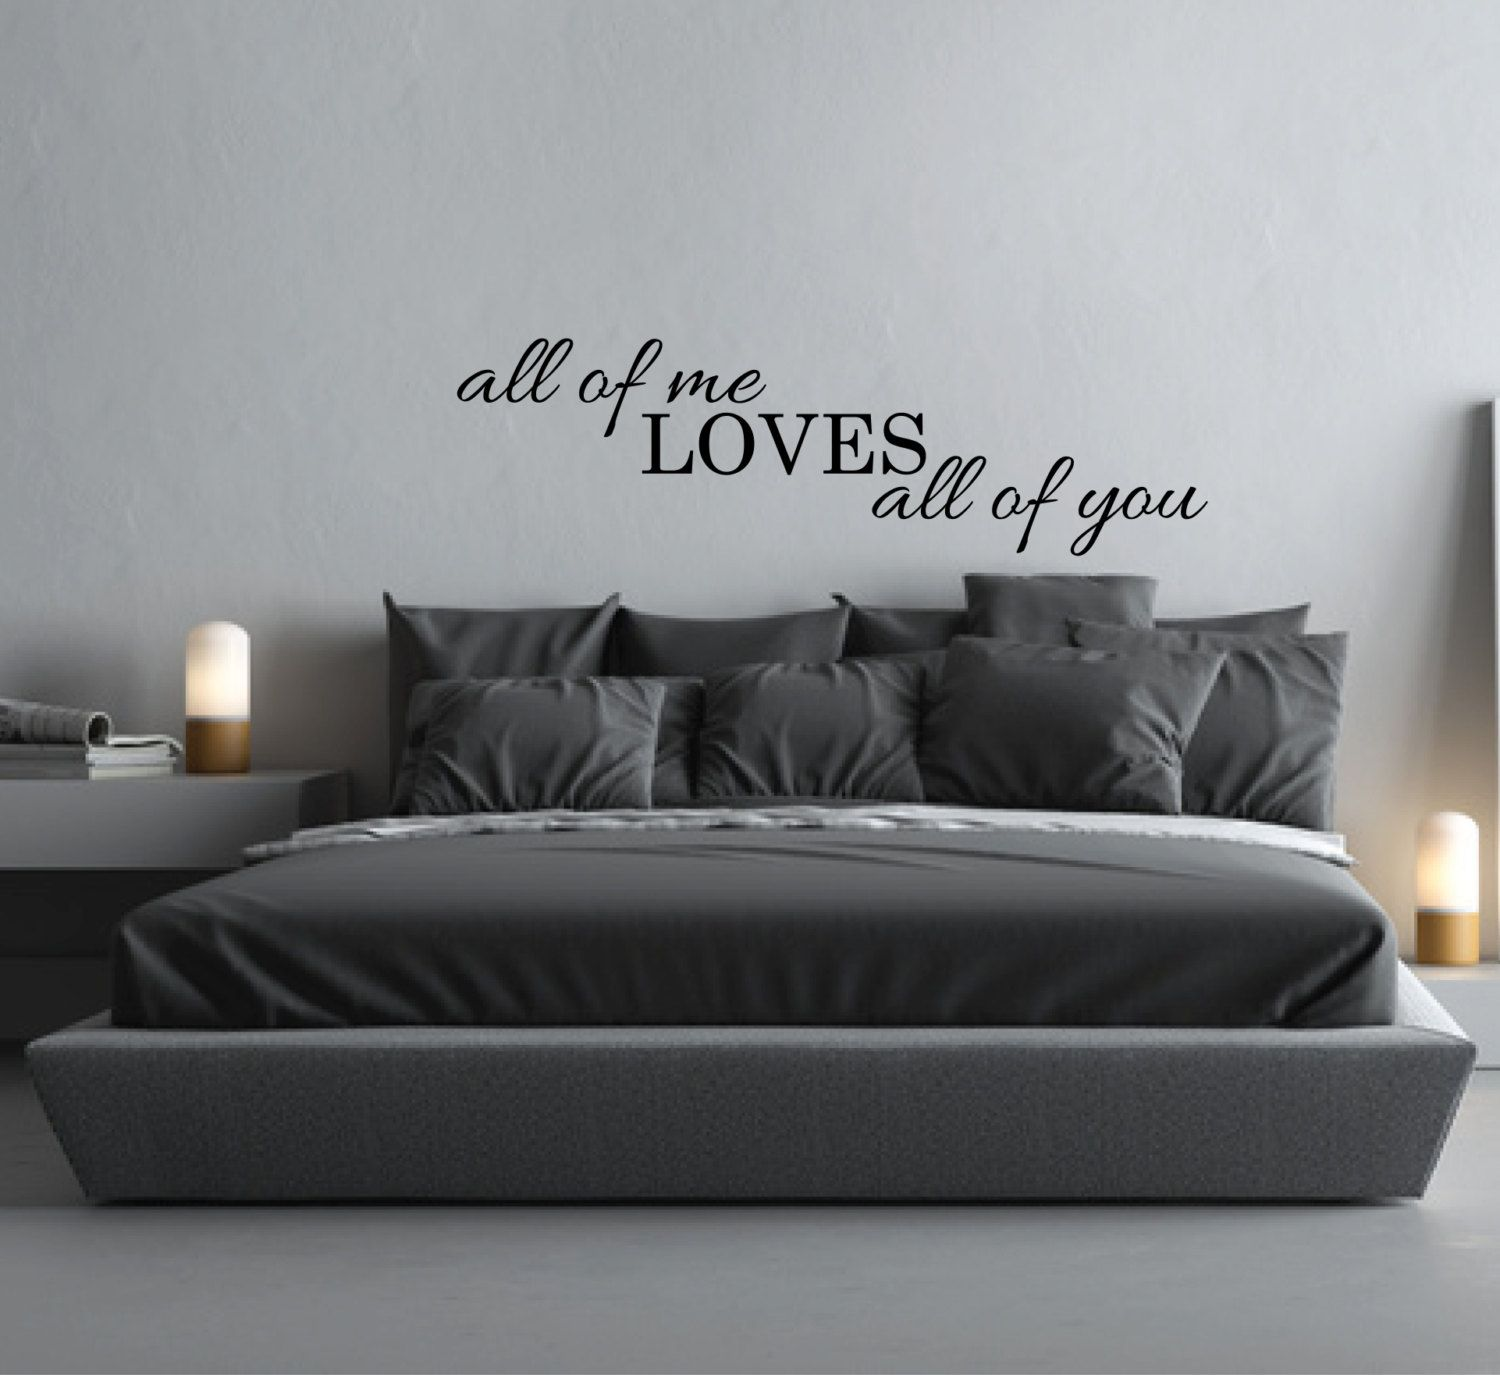 Above Bed Wall Decal Quote All Of Me Loves All Of You L